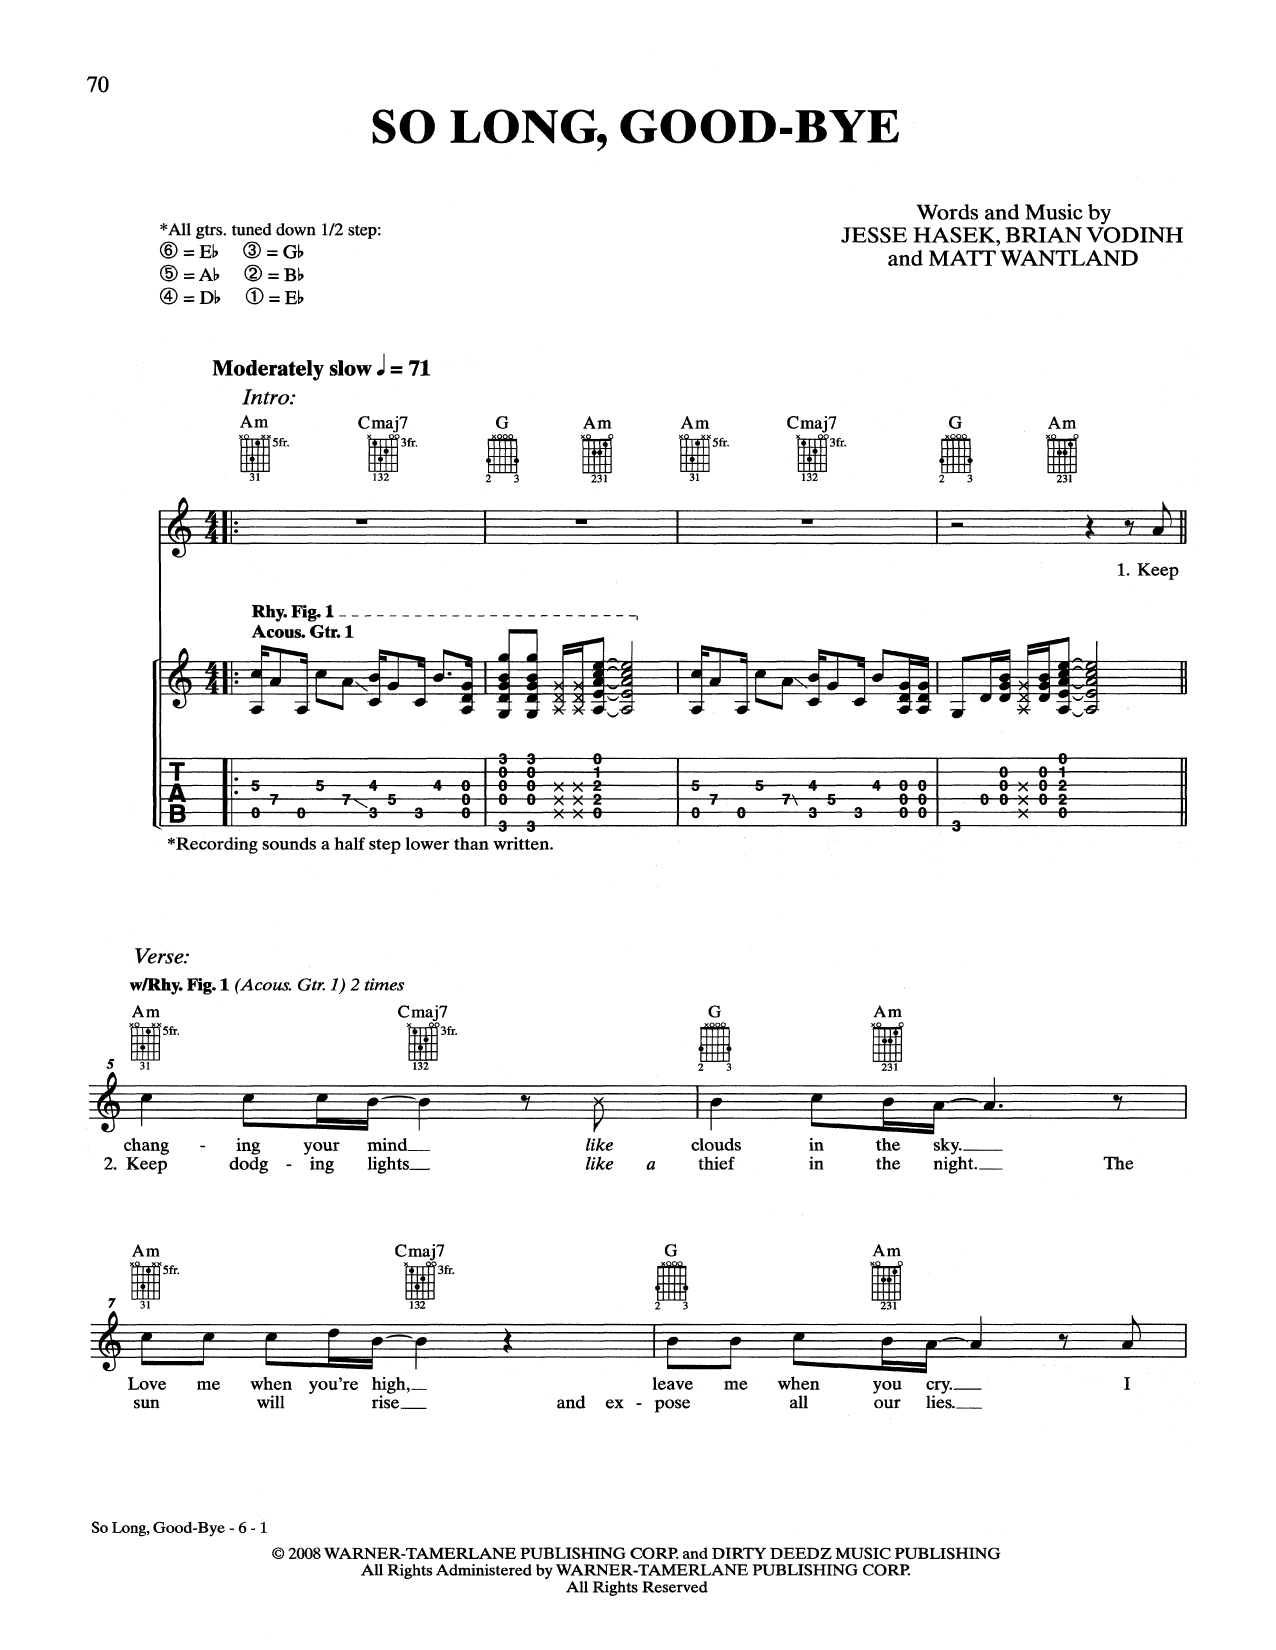 So long good bye guitar tab by 10 years guitar tab 161057 10 years so long good bye guitar tab hexwebz Images